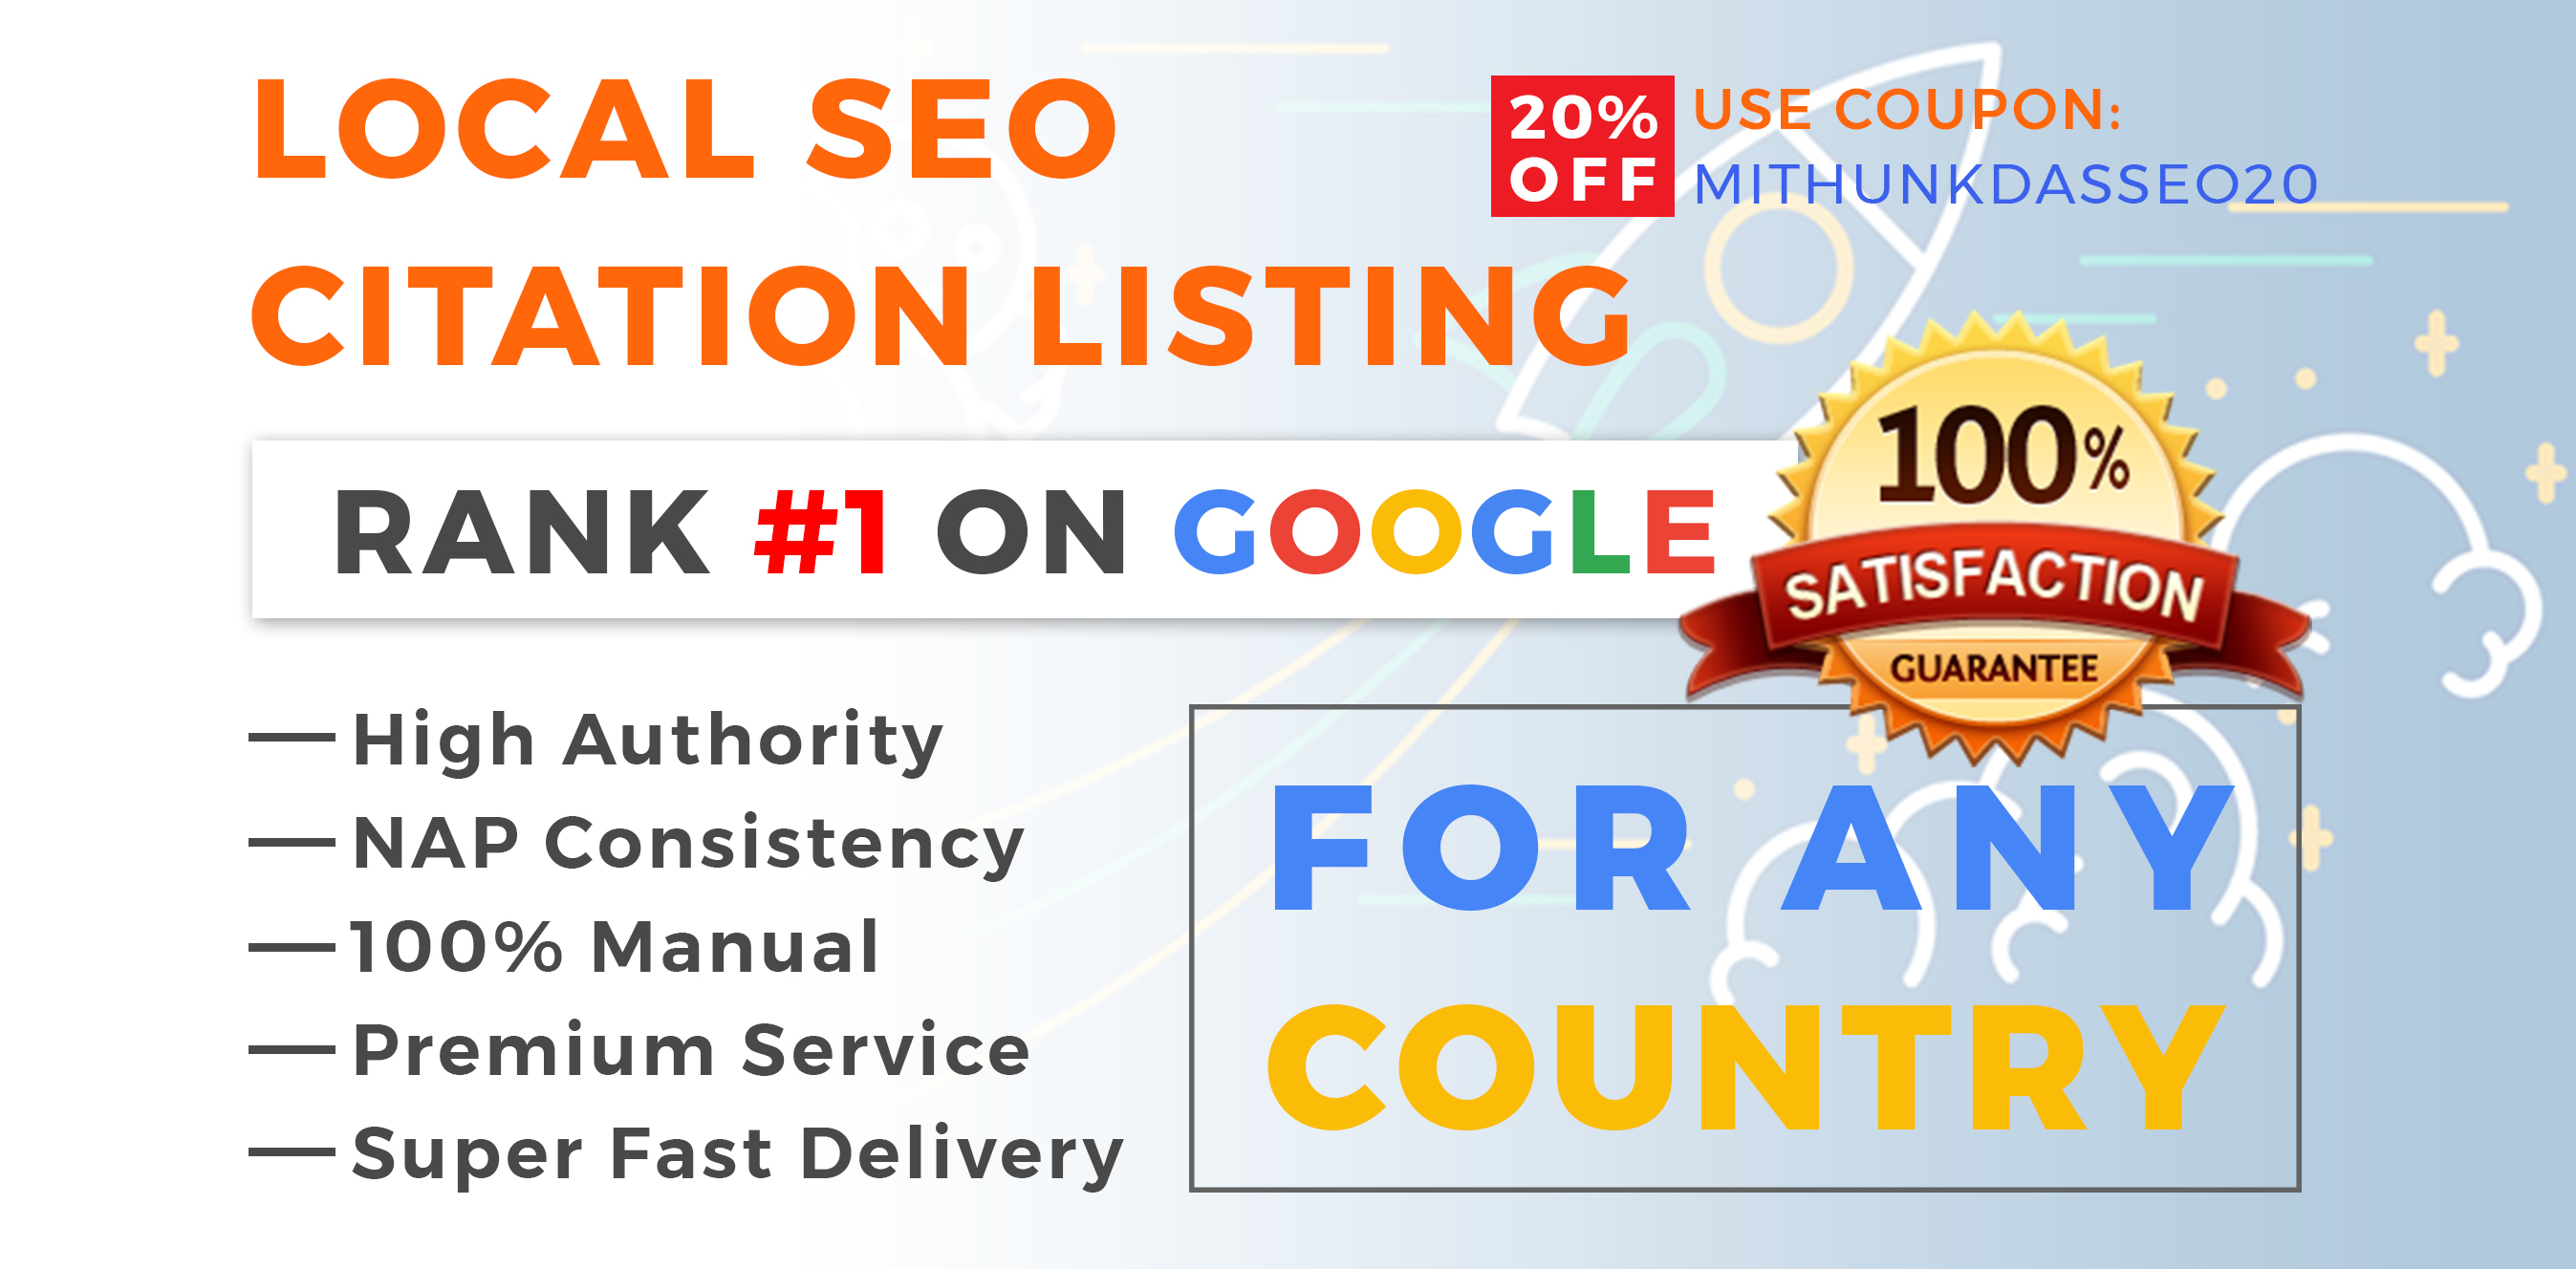 I will do 10 to 25 high authority local citation for your business with moz,  yext